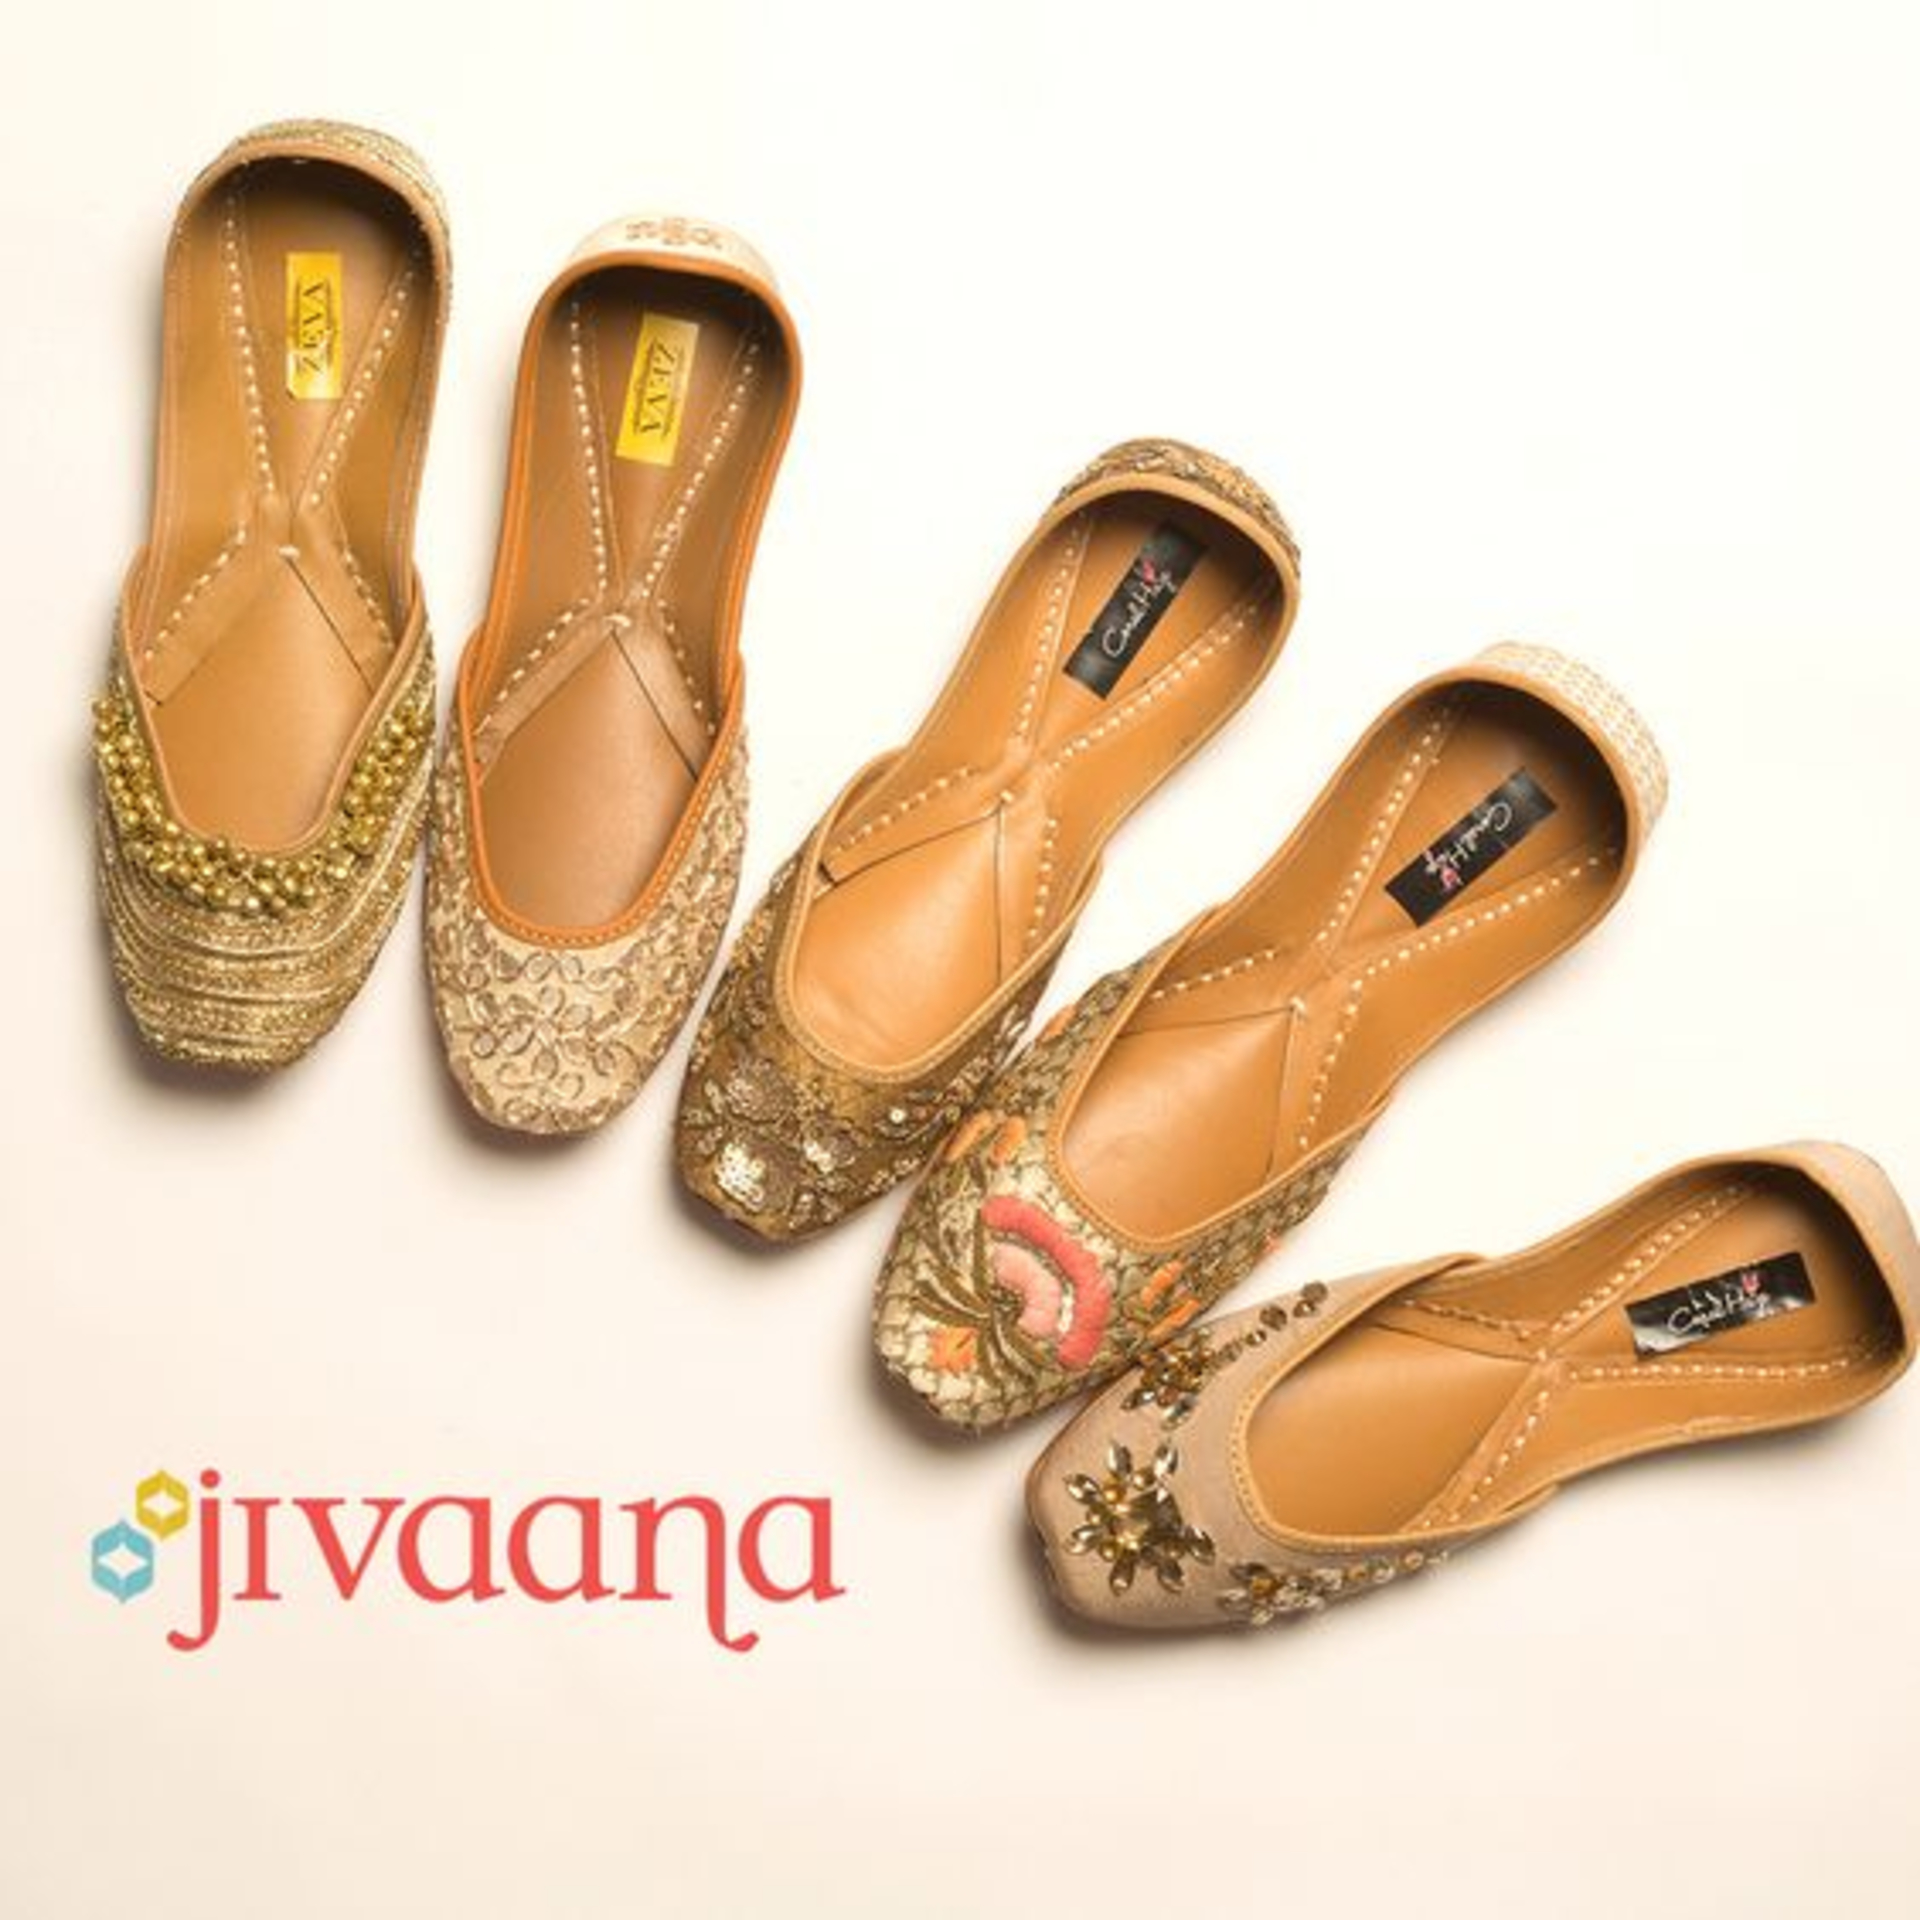 WOMEN FOOTWEAR FOR AN INDIAN WEDDING - FT. JIVAANA.COM image